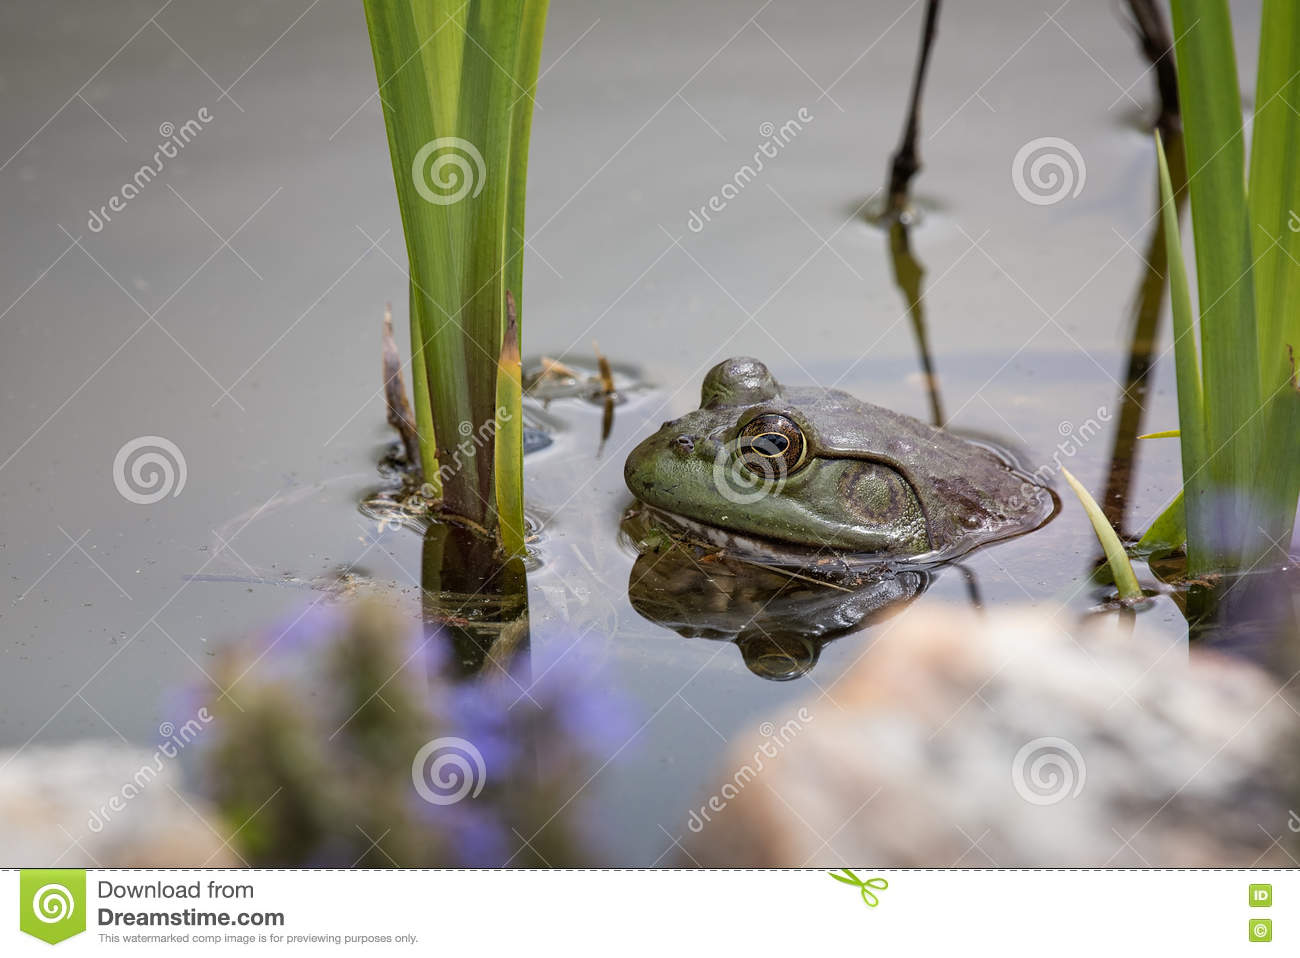 American Bullfrog in a pond in Missouri